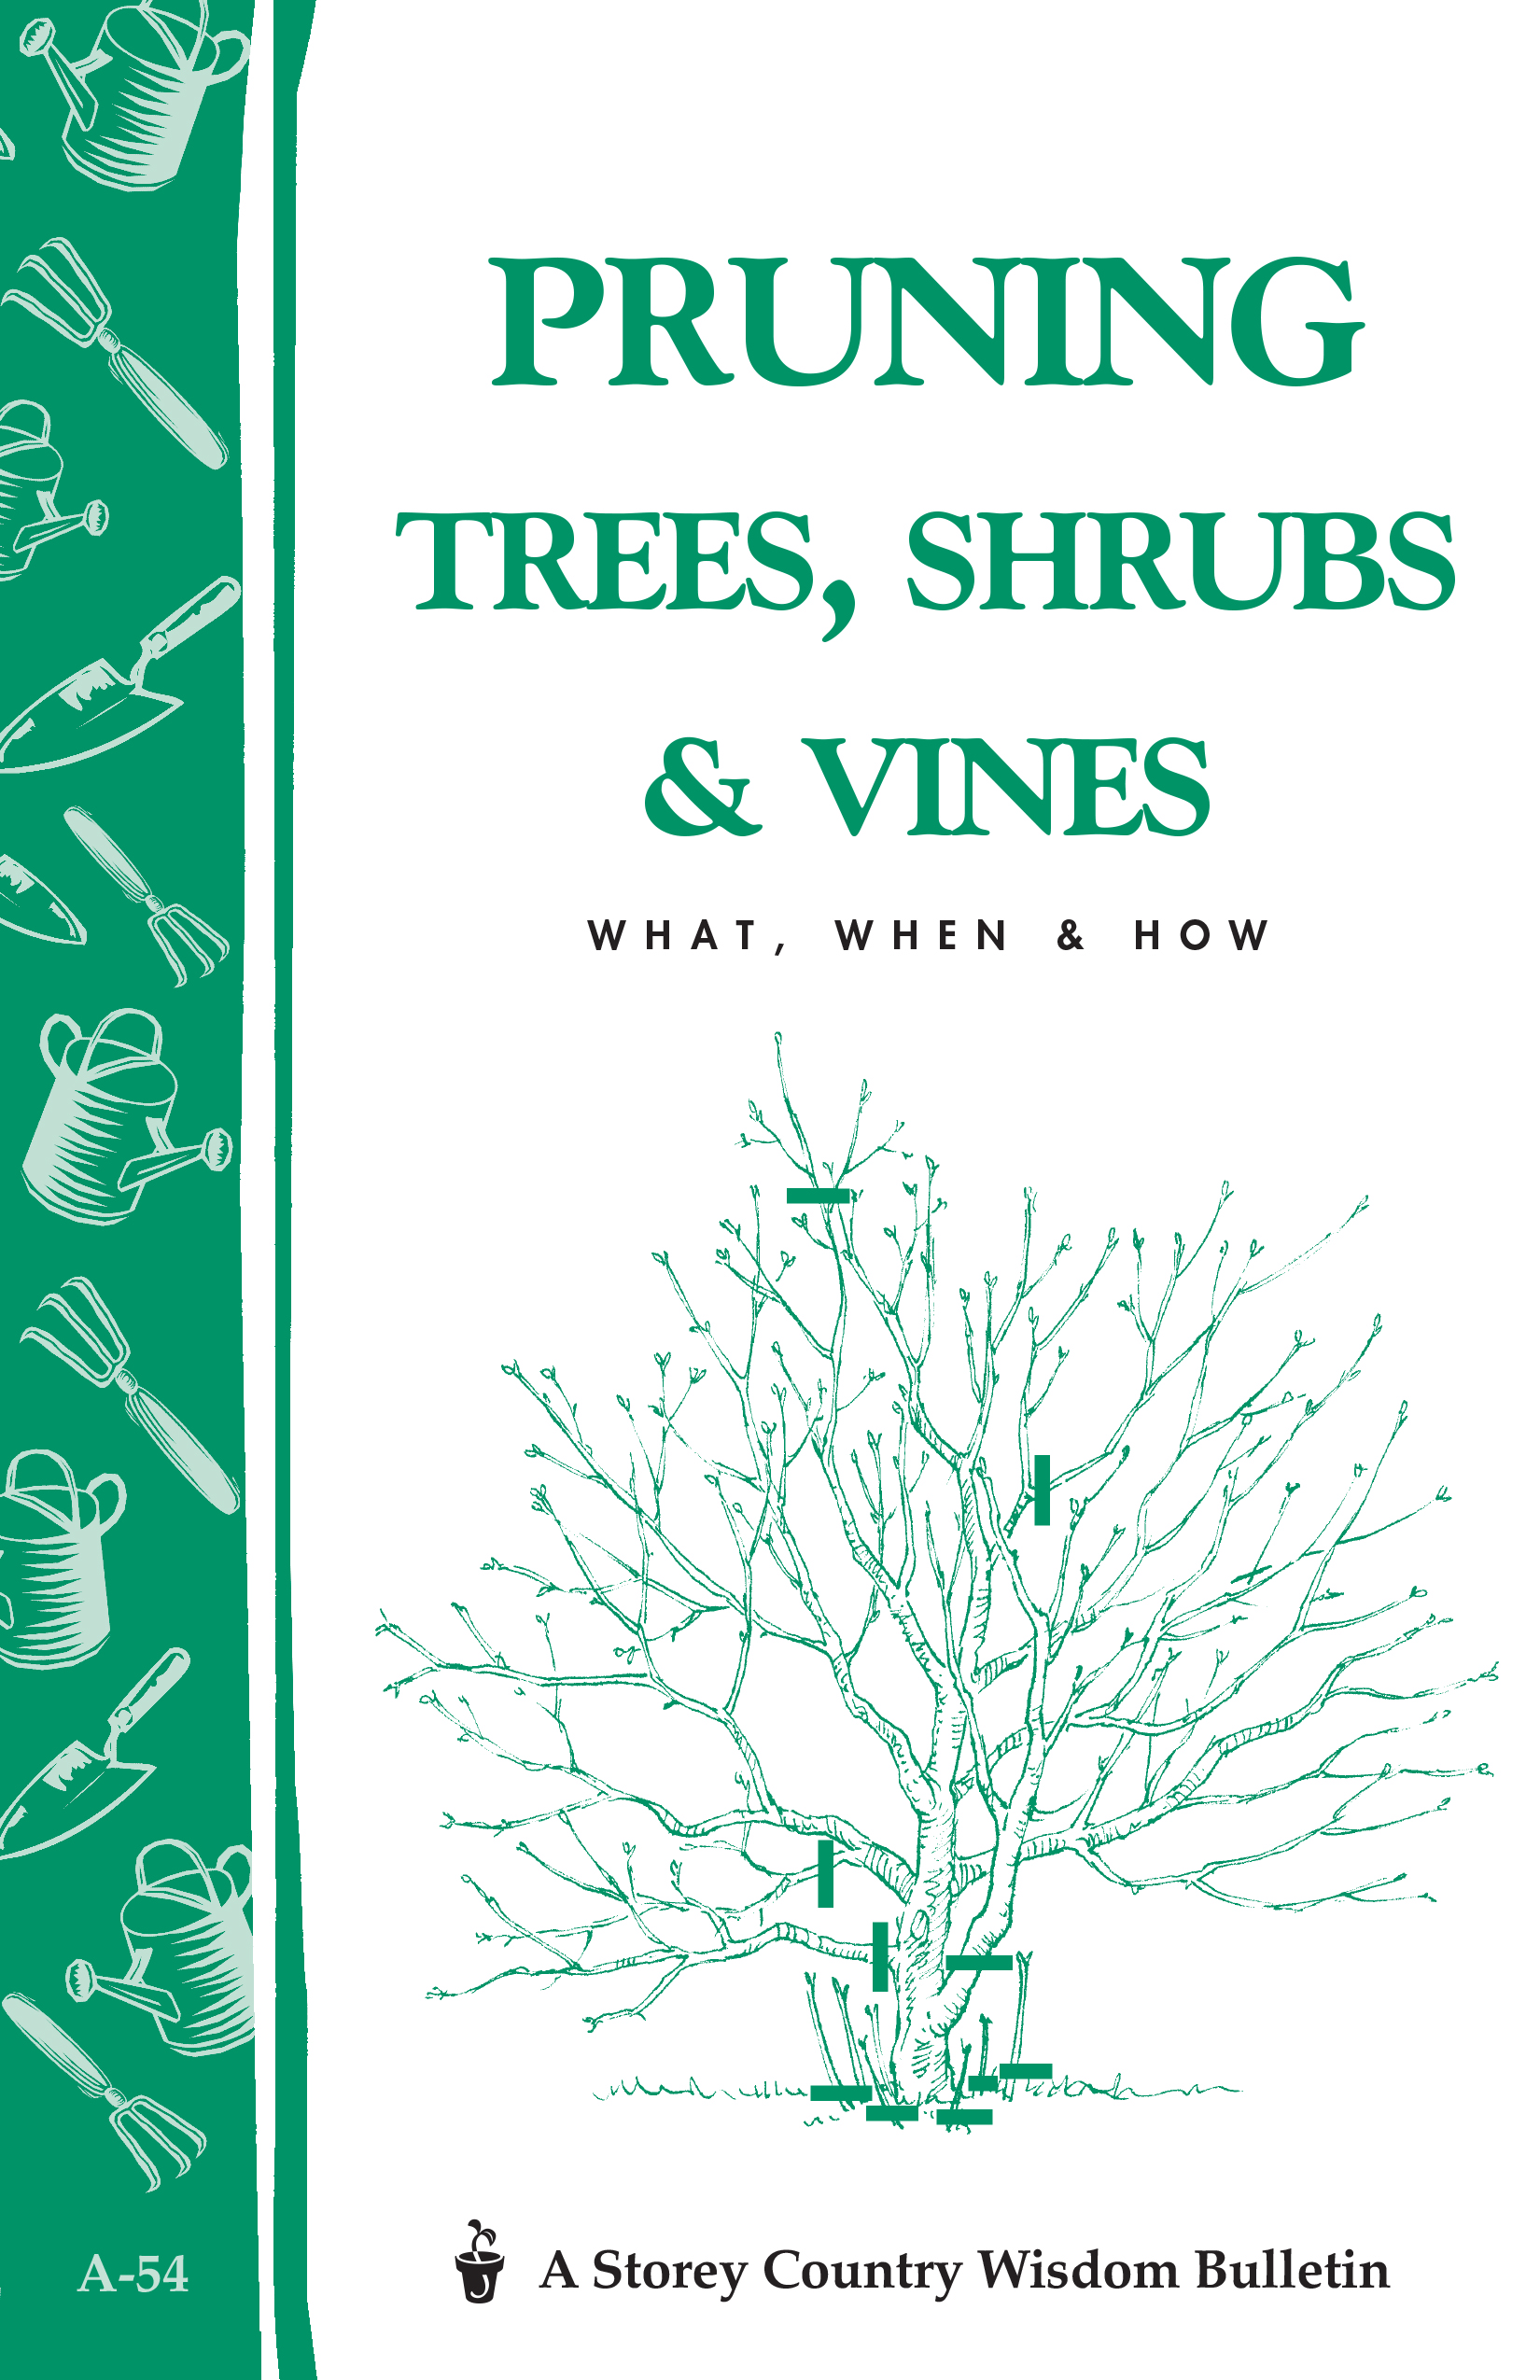 Pruning Trees, Shrubs & Vines Storey's Country Wisdom Bulletin A-54 - Editors of Garden Way Publishing